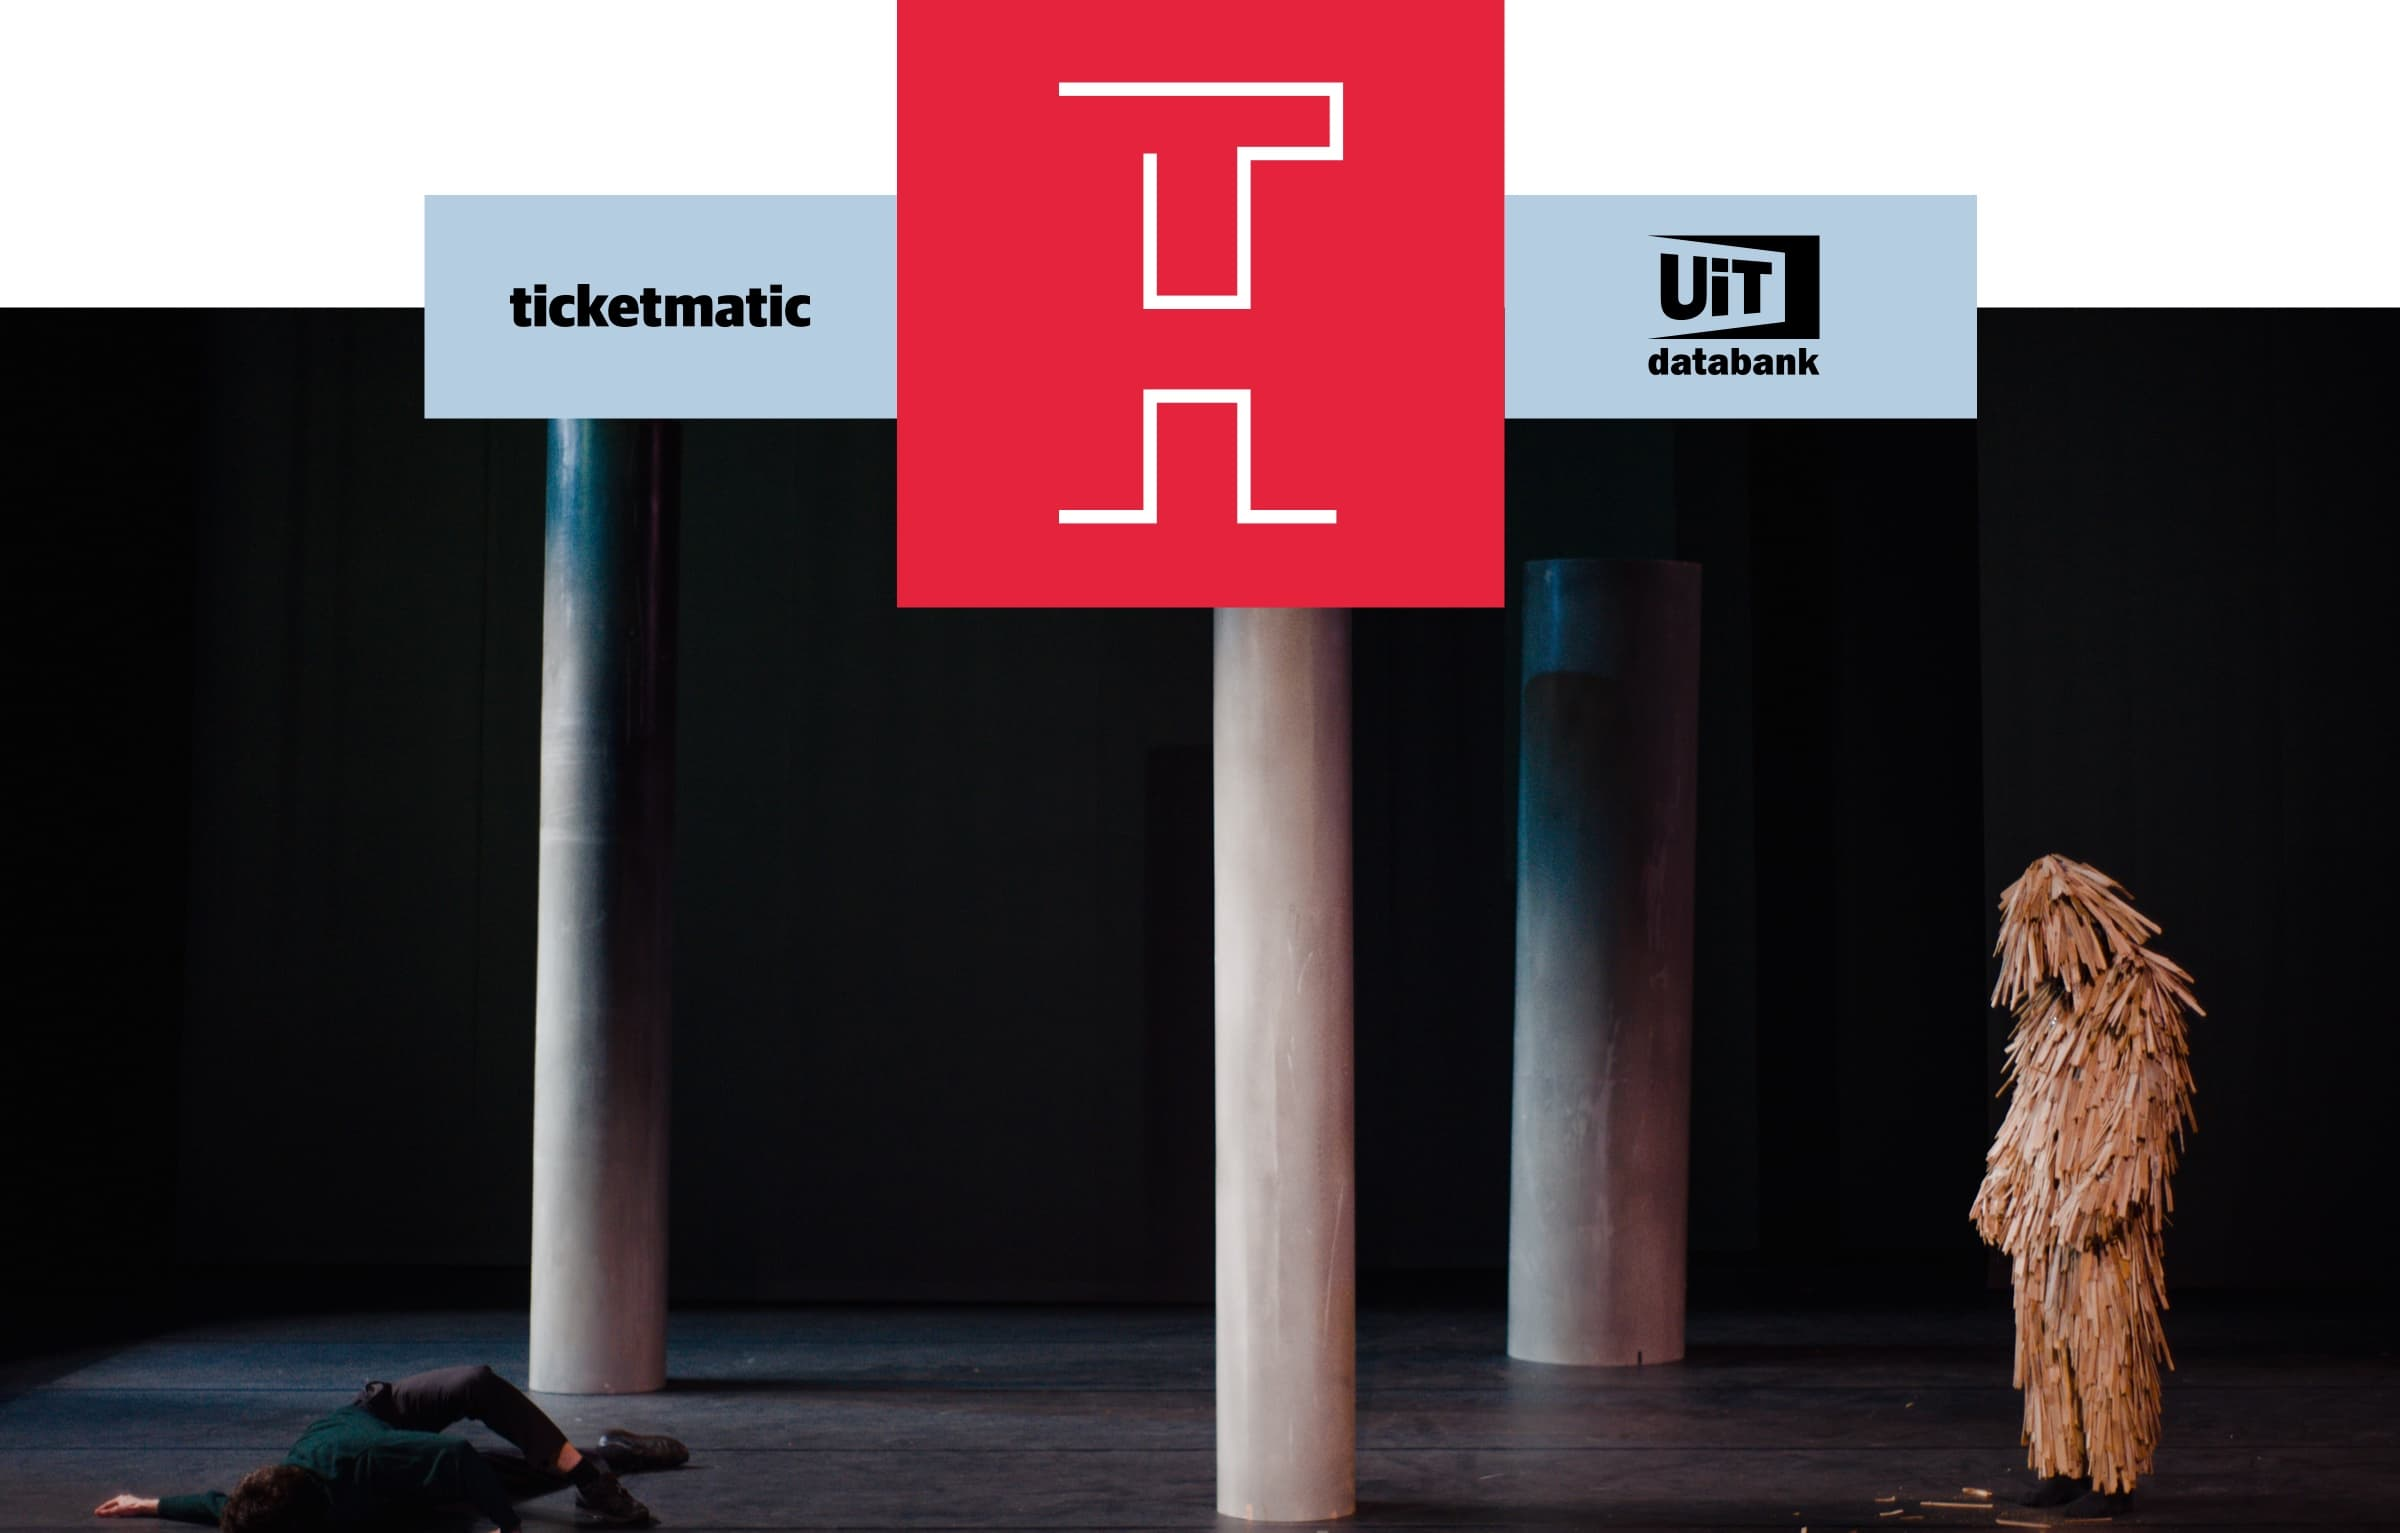 Ticketmatic and UiTdatabank integration